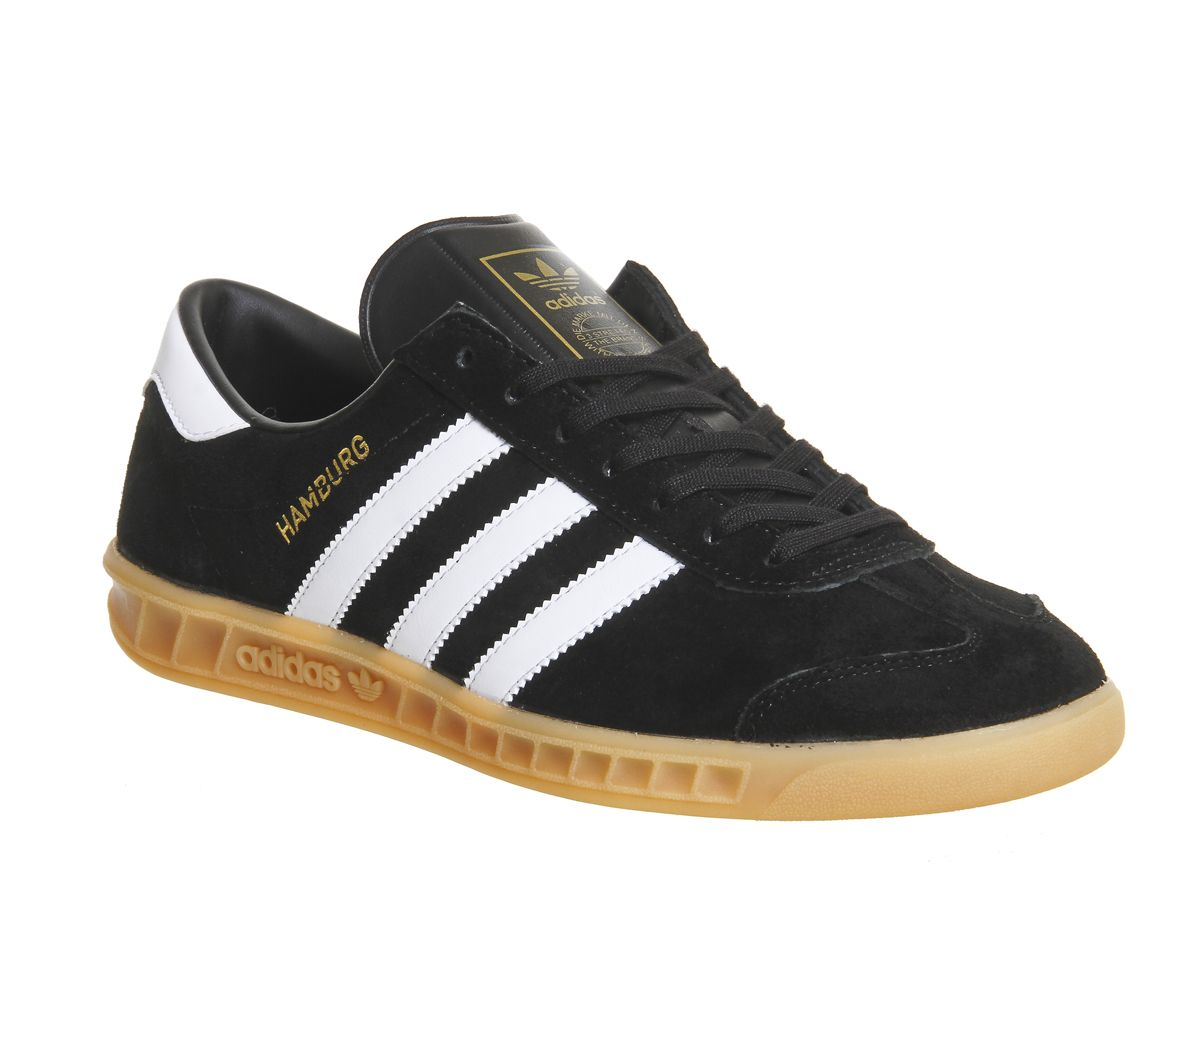 c35894047d5b Adidas Hamburg Black Gum - His trainers